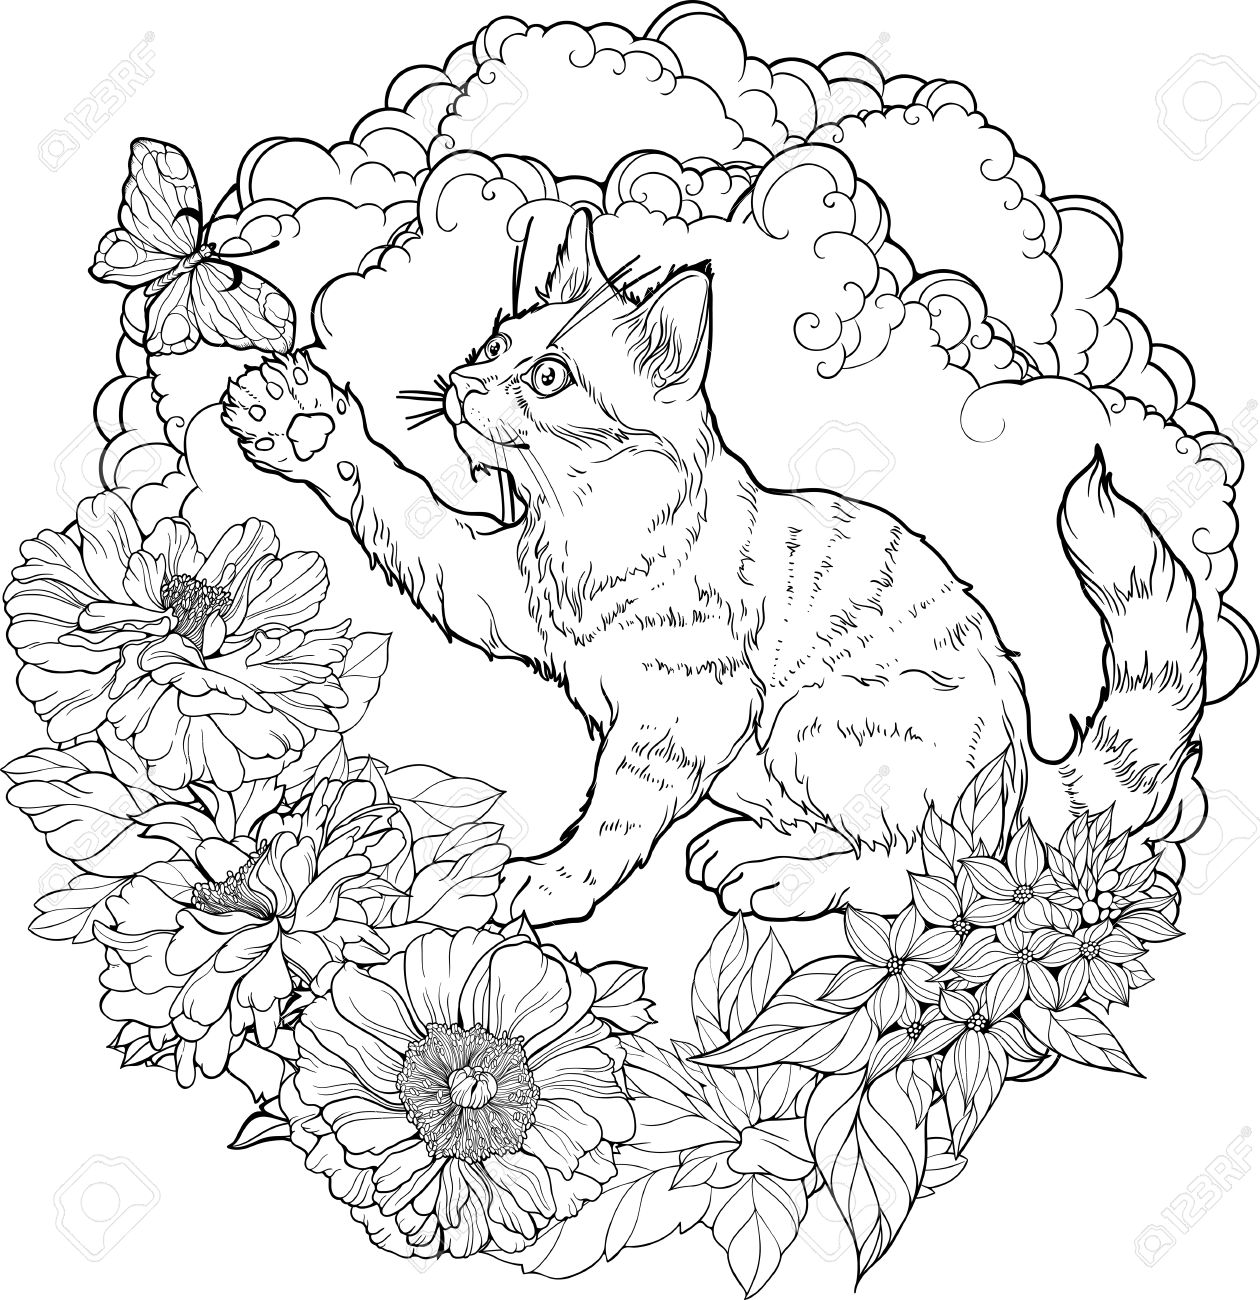 black and white illustration of cat playing with butterfly in